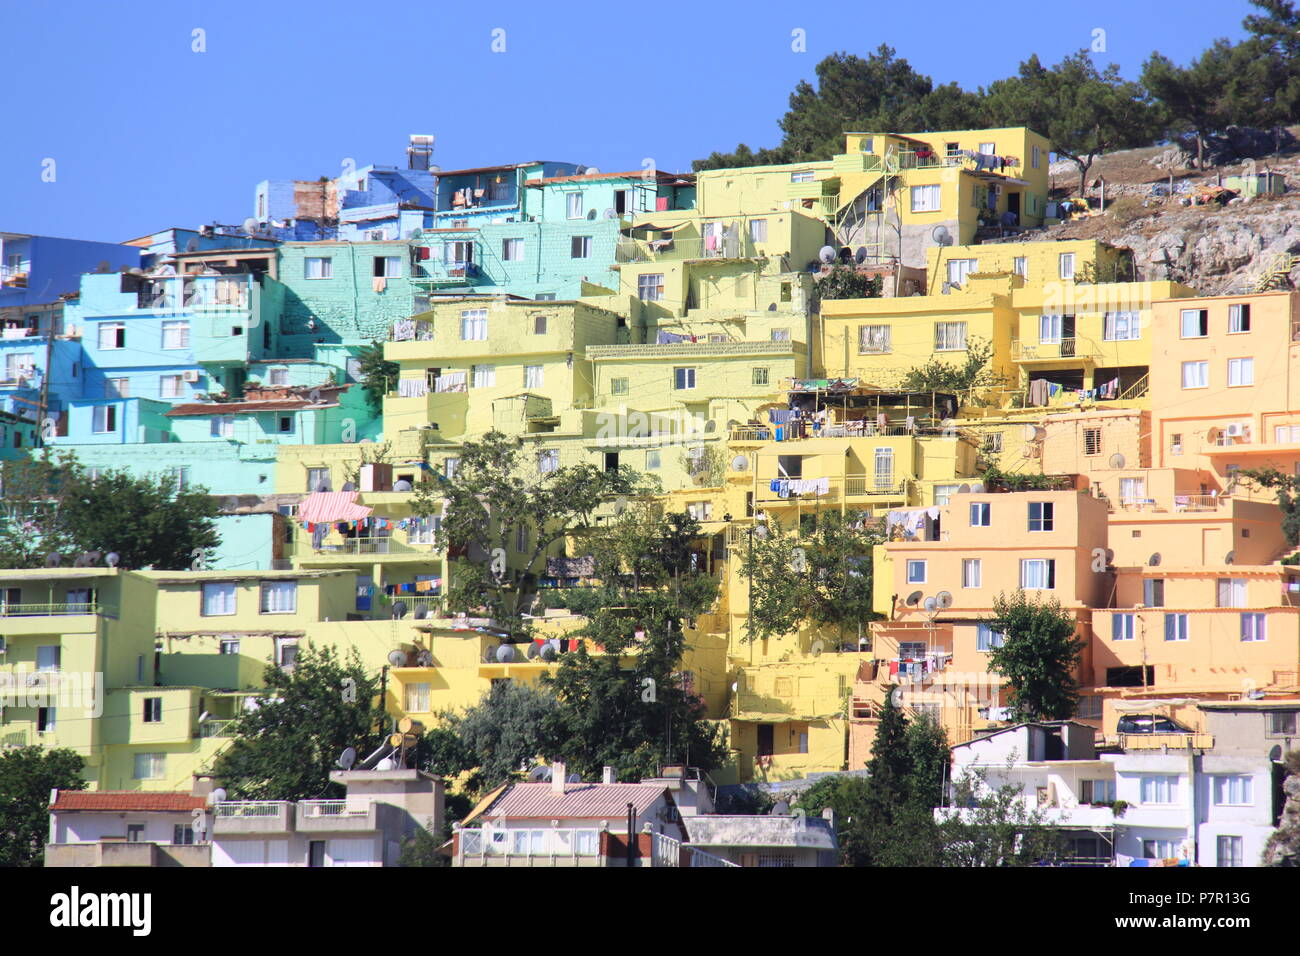 multi coloured painted houses on the hillside overlooking the town